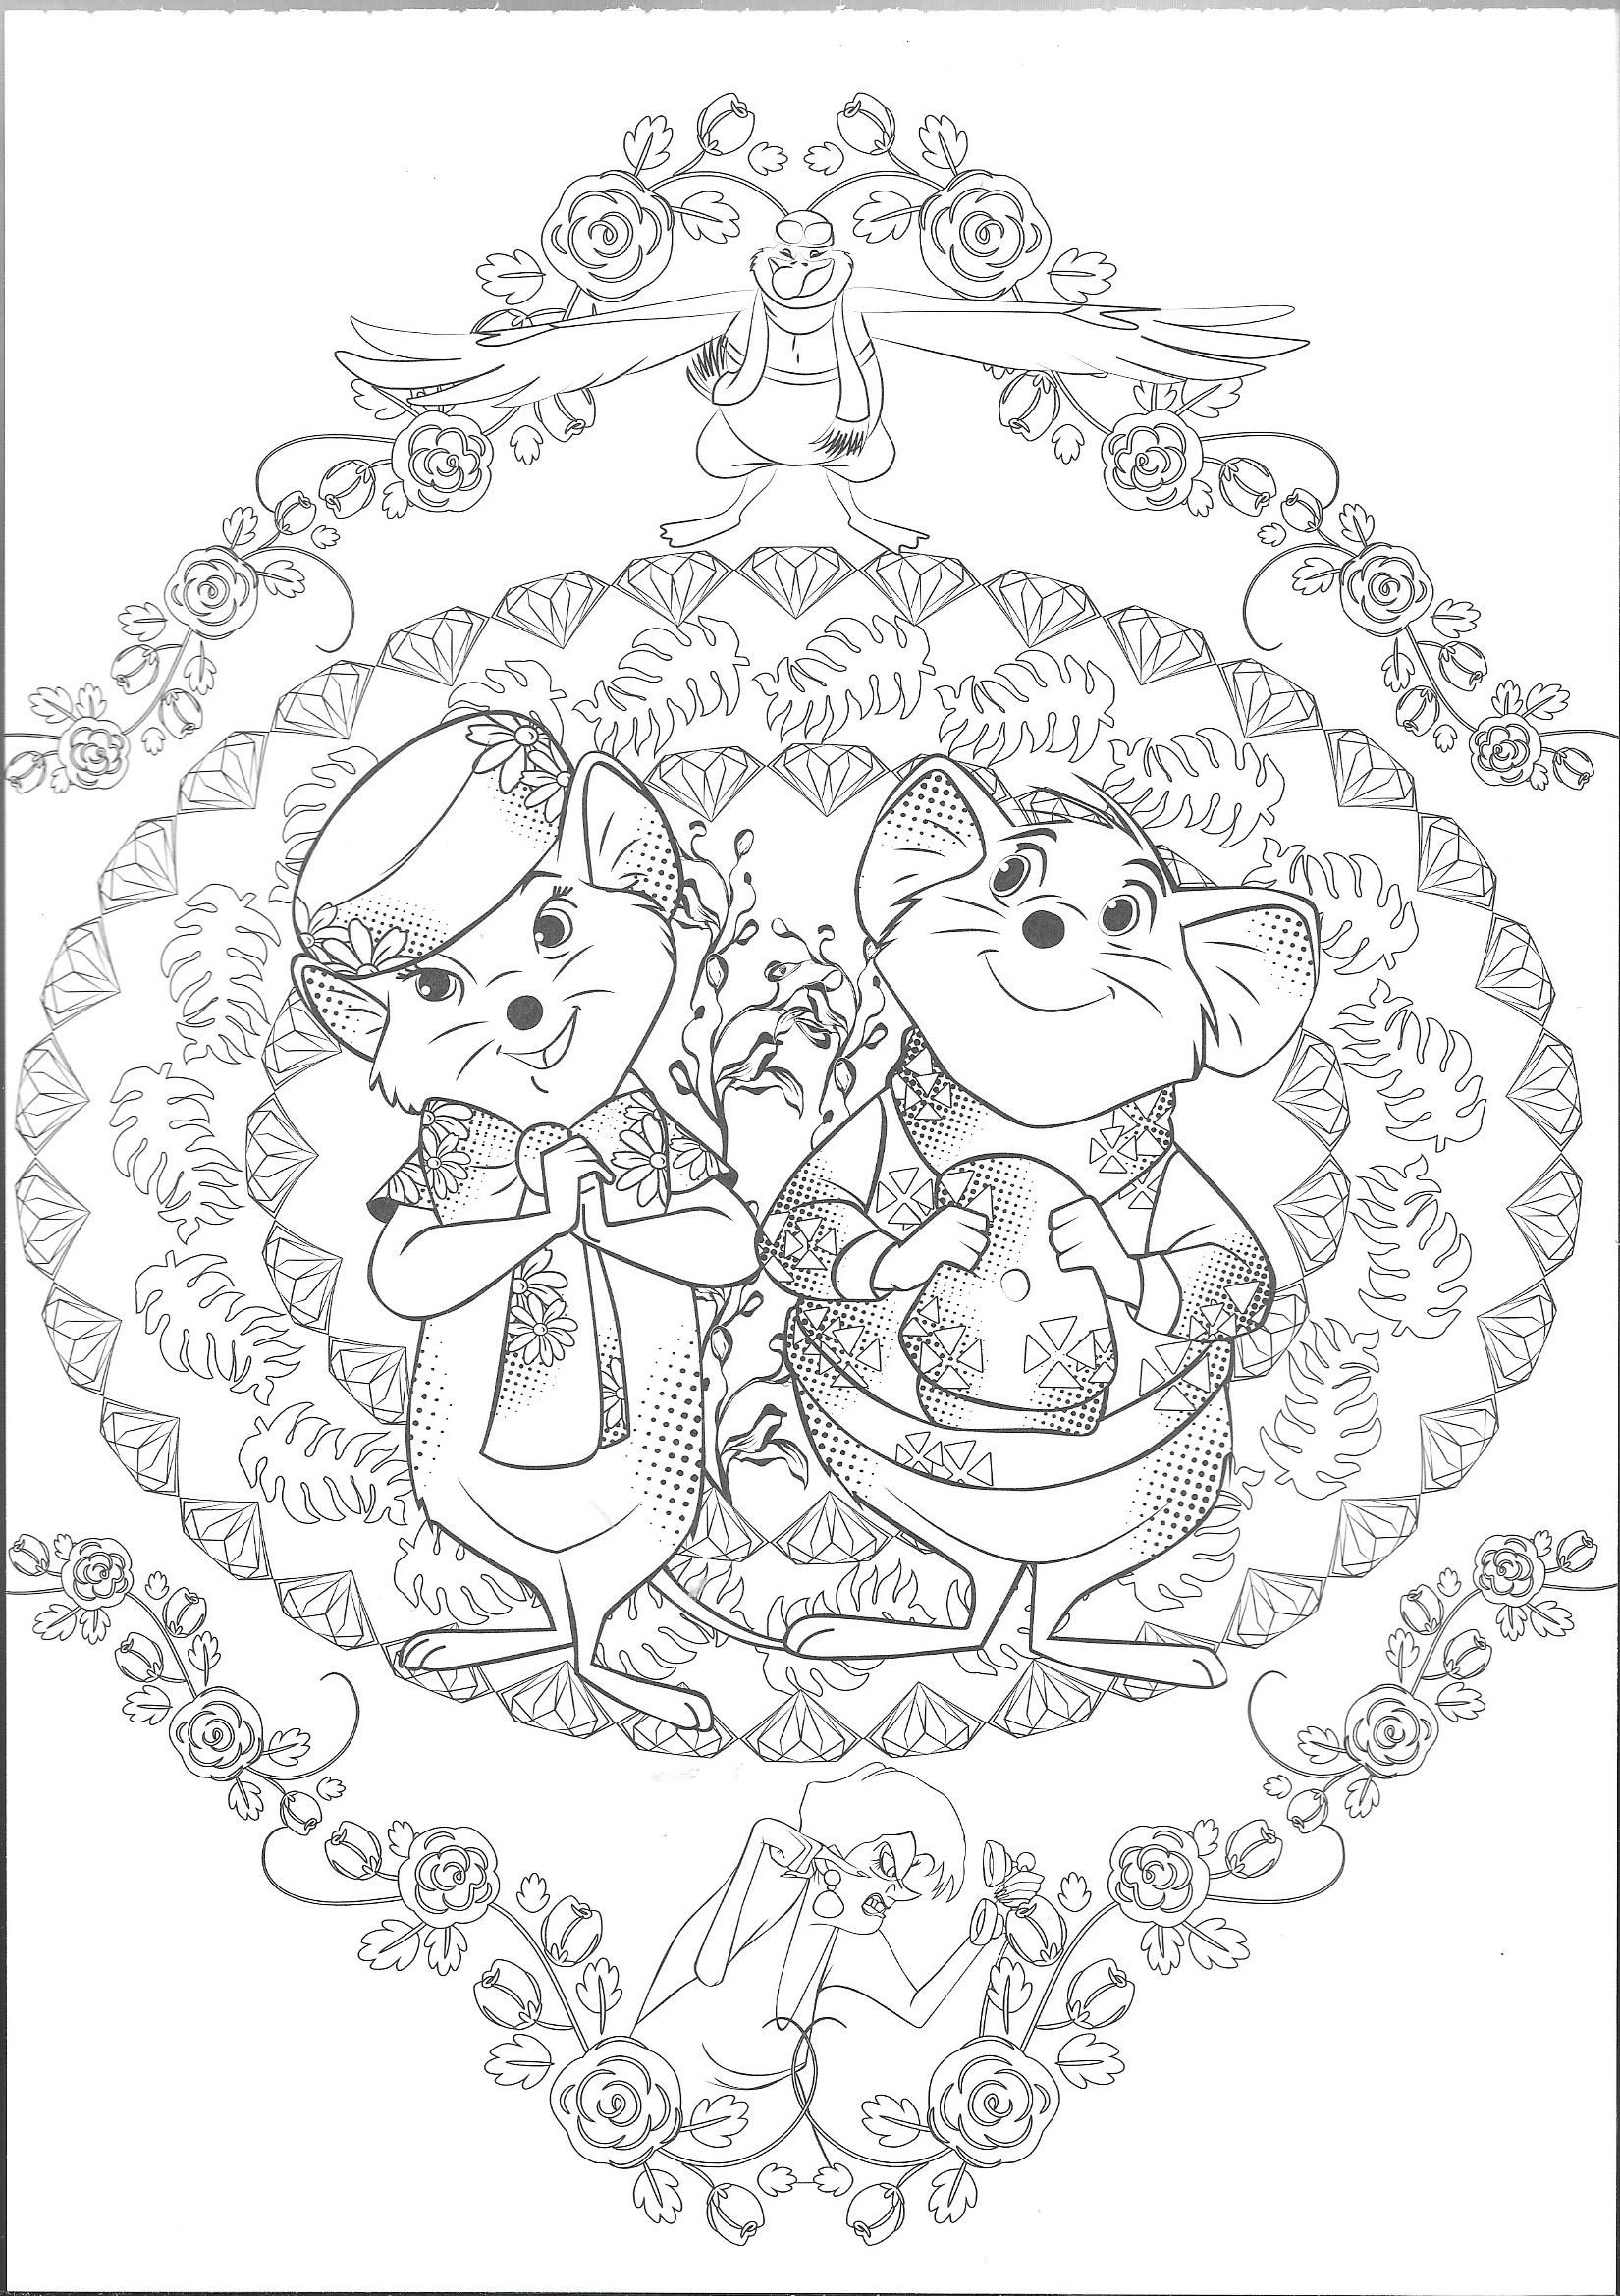 Rescuers Grayscale Coloring Page Grayscale Coloring Disney Coloring Pages Coloring Pages